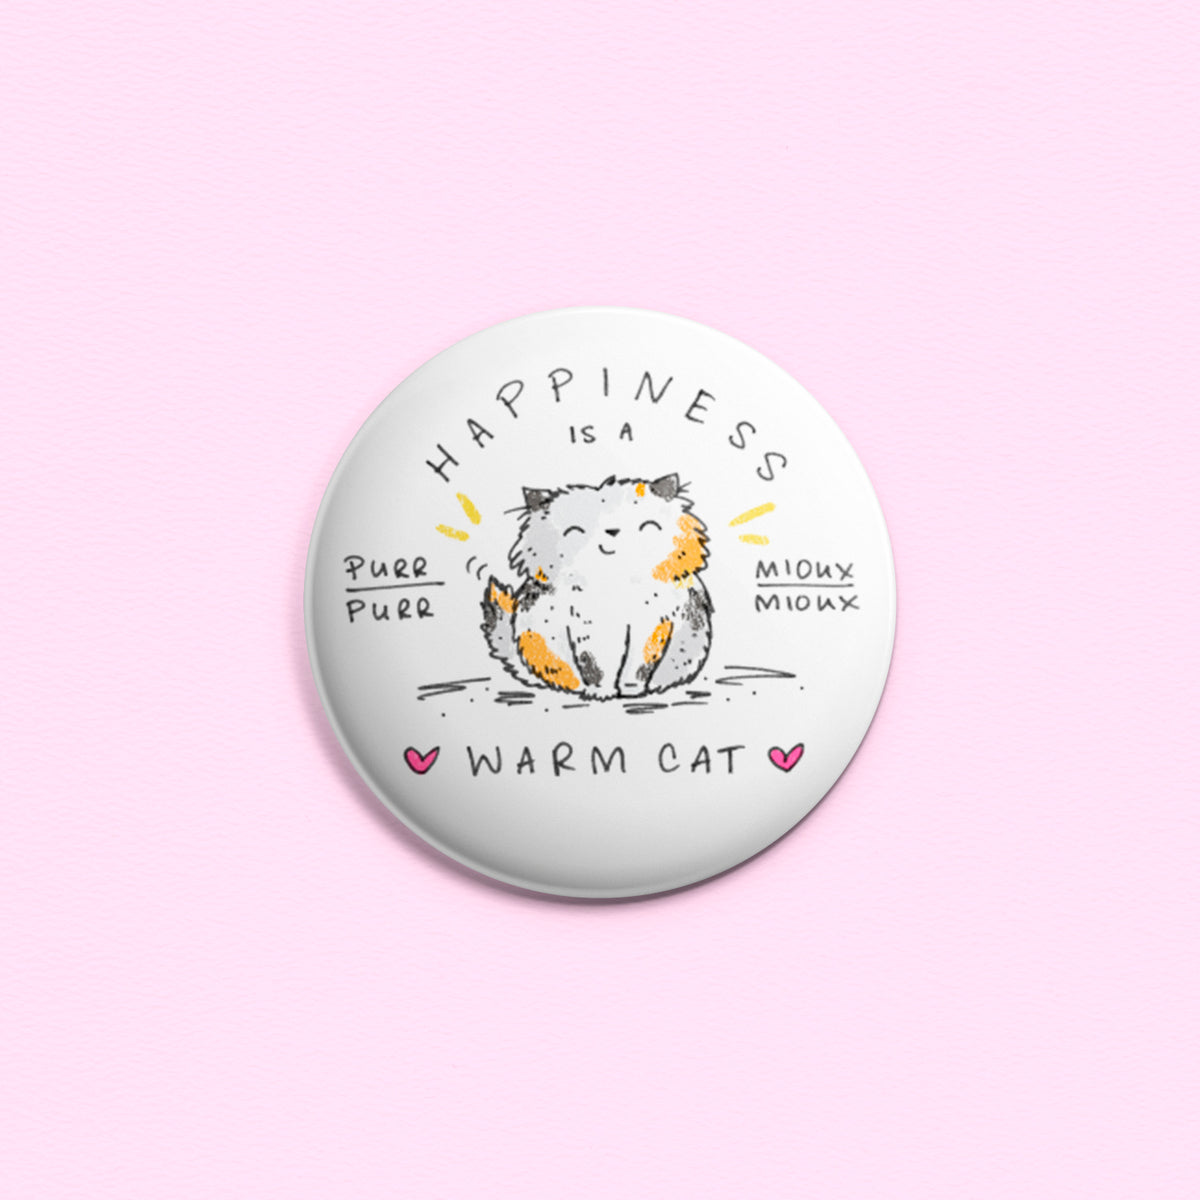 Happiness Is A Warm Cat - Button or magnet with a drawing of a happy calico cat.